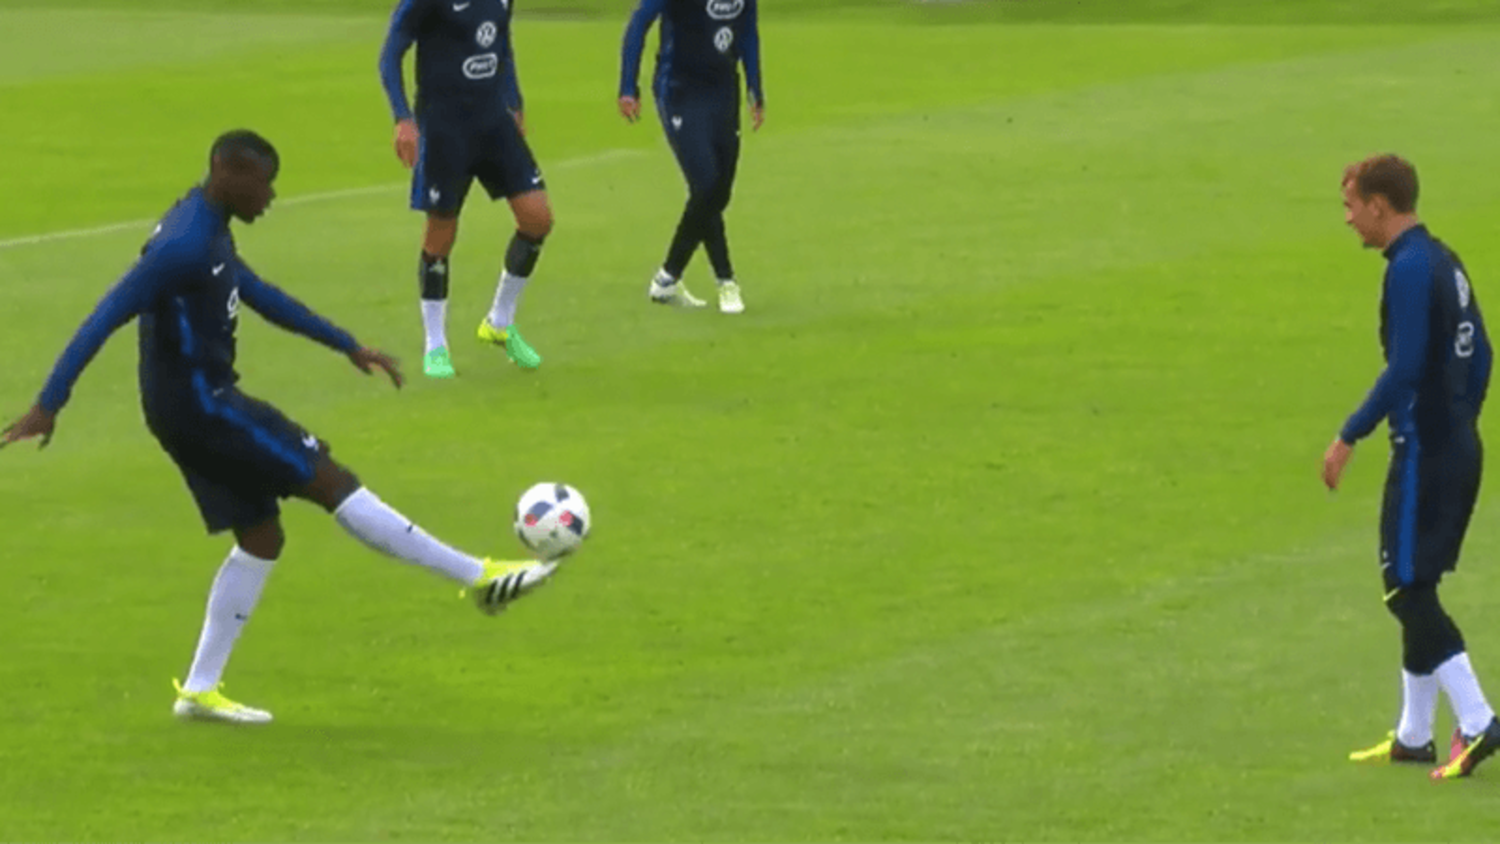 Dimitri Payet, Paul Pogba & More Show Their Skills In France Training